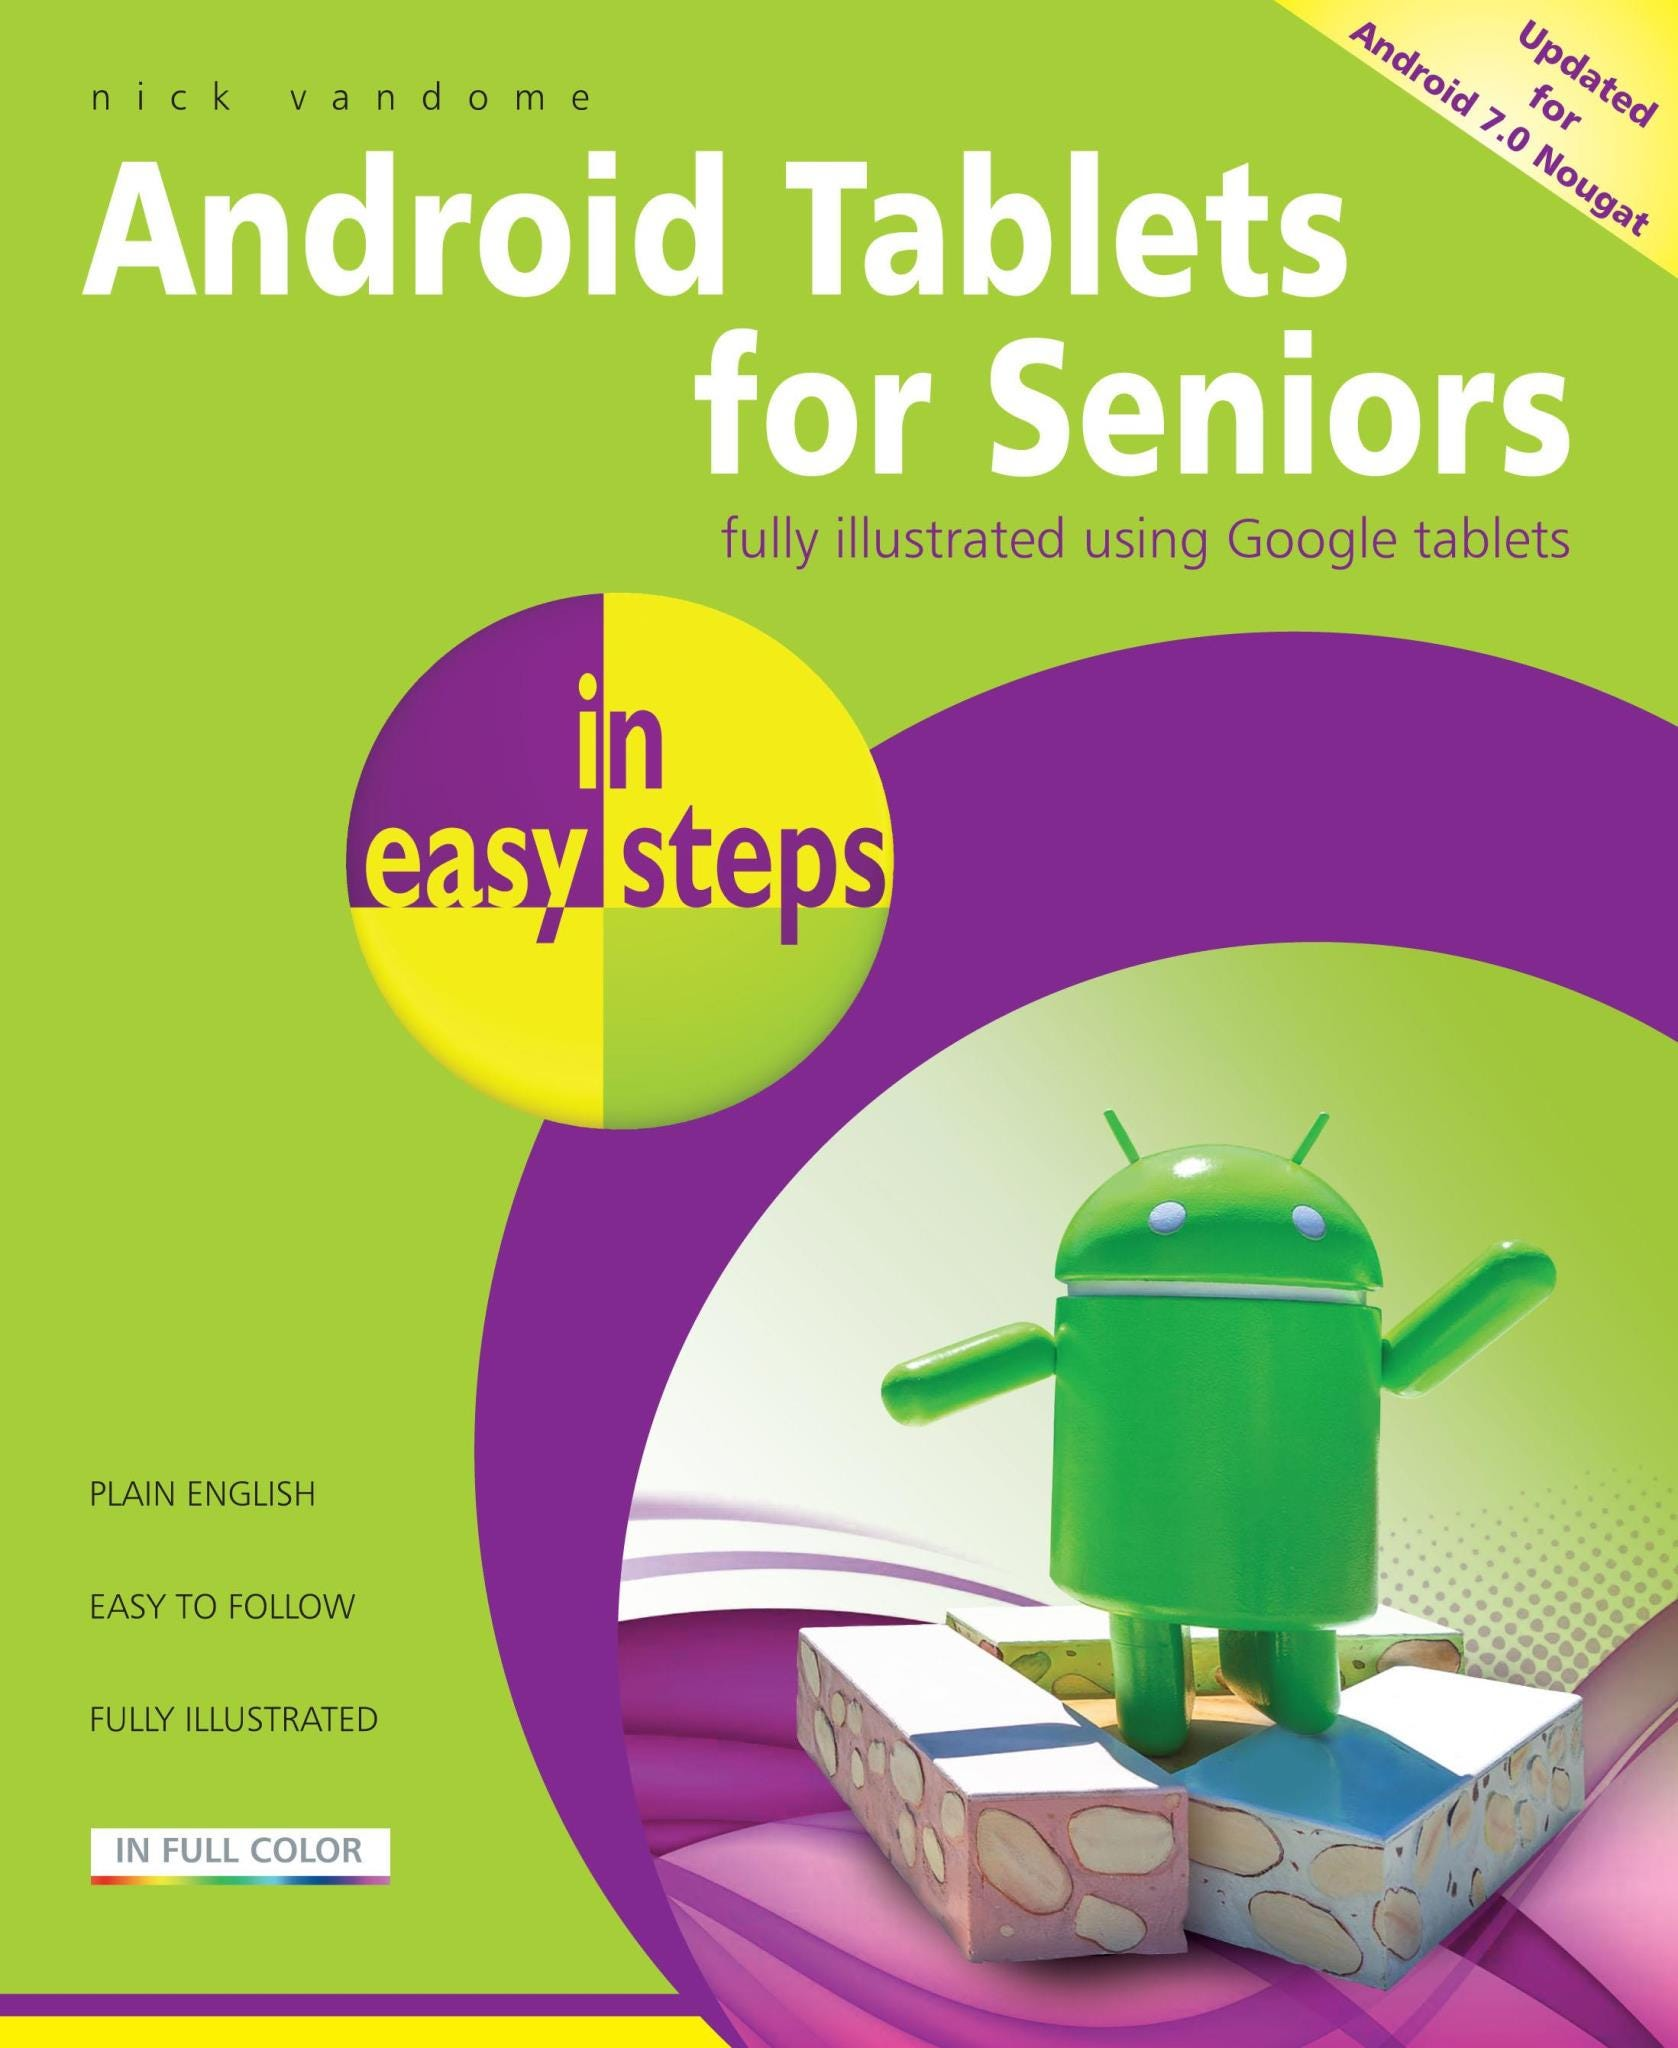 In Easy Steps Android Tablets for Seniors (3rd Edition) - Covers Android 7.0 Nougat